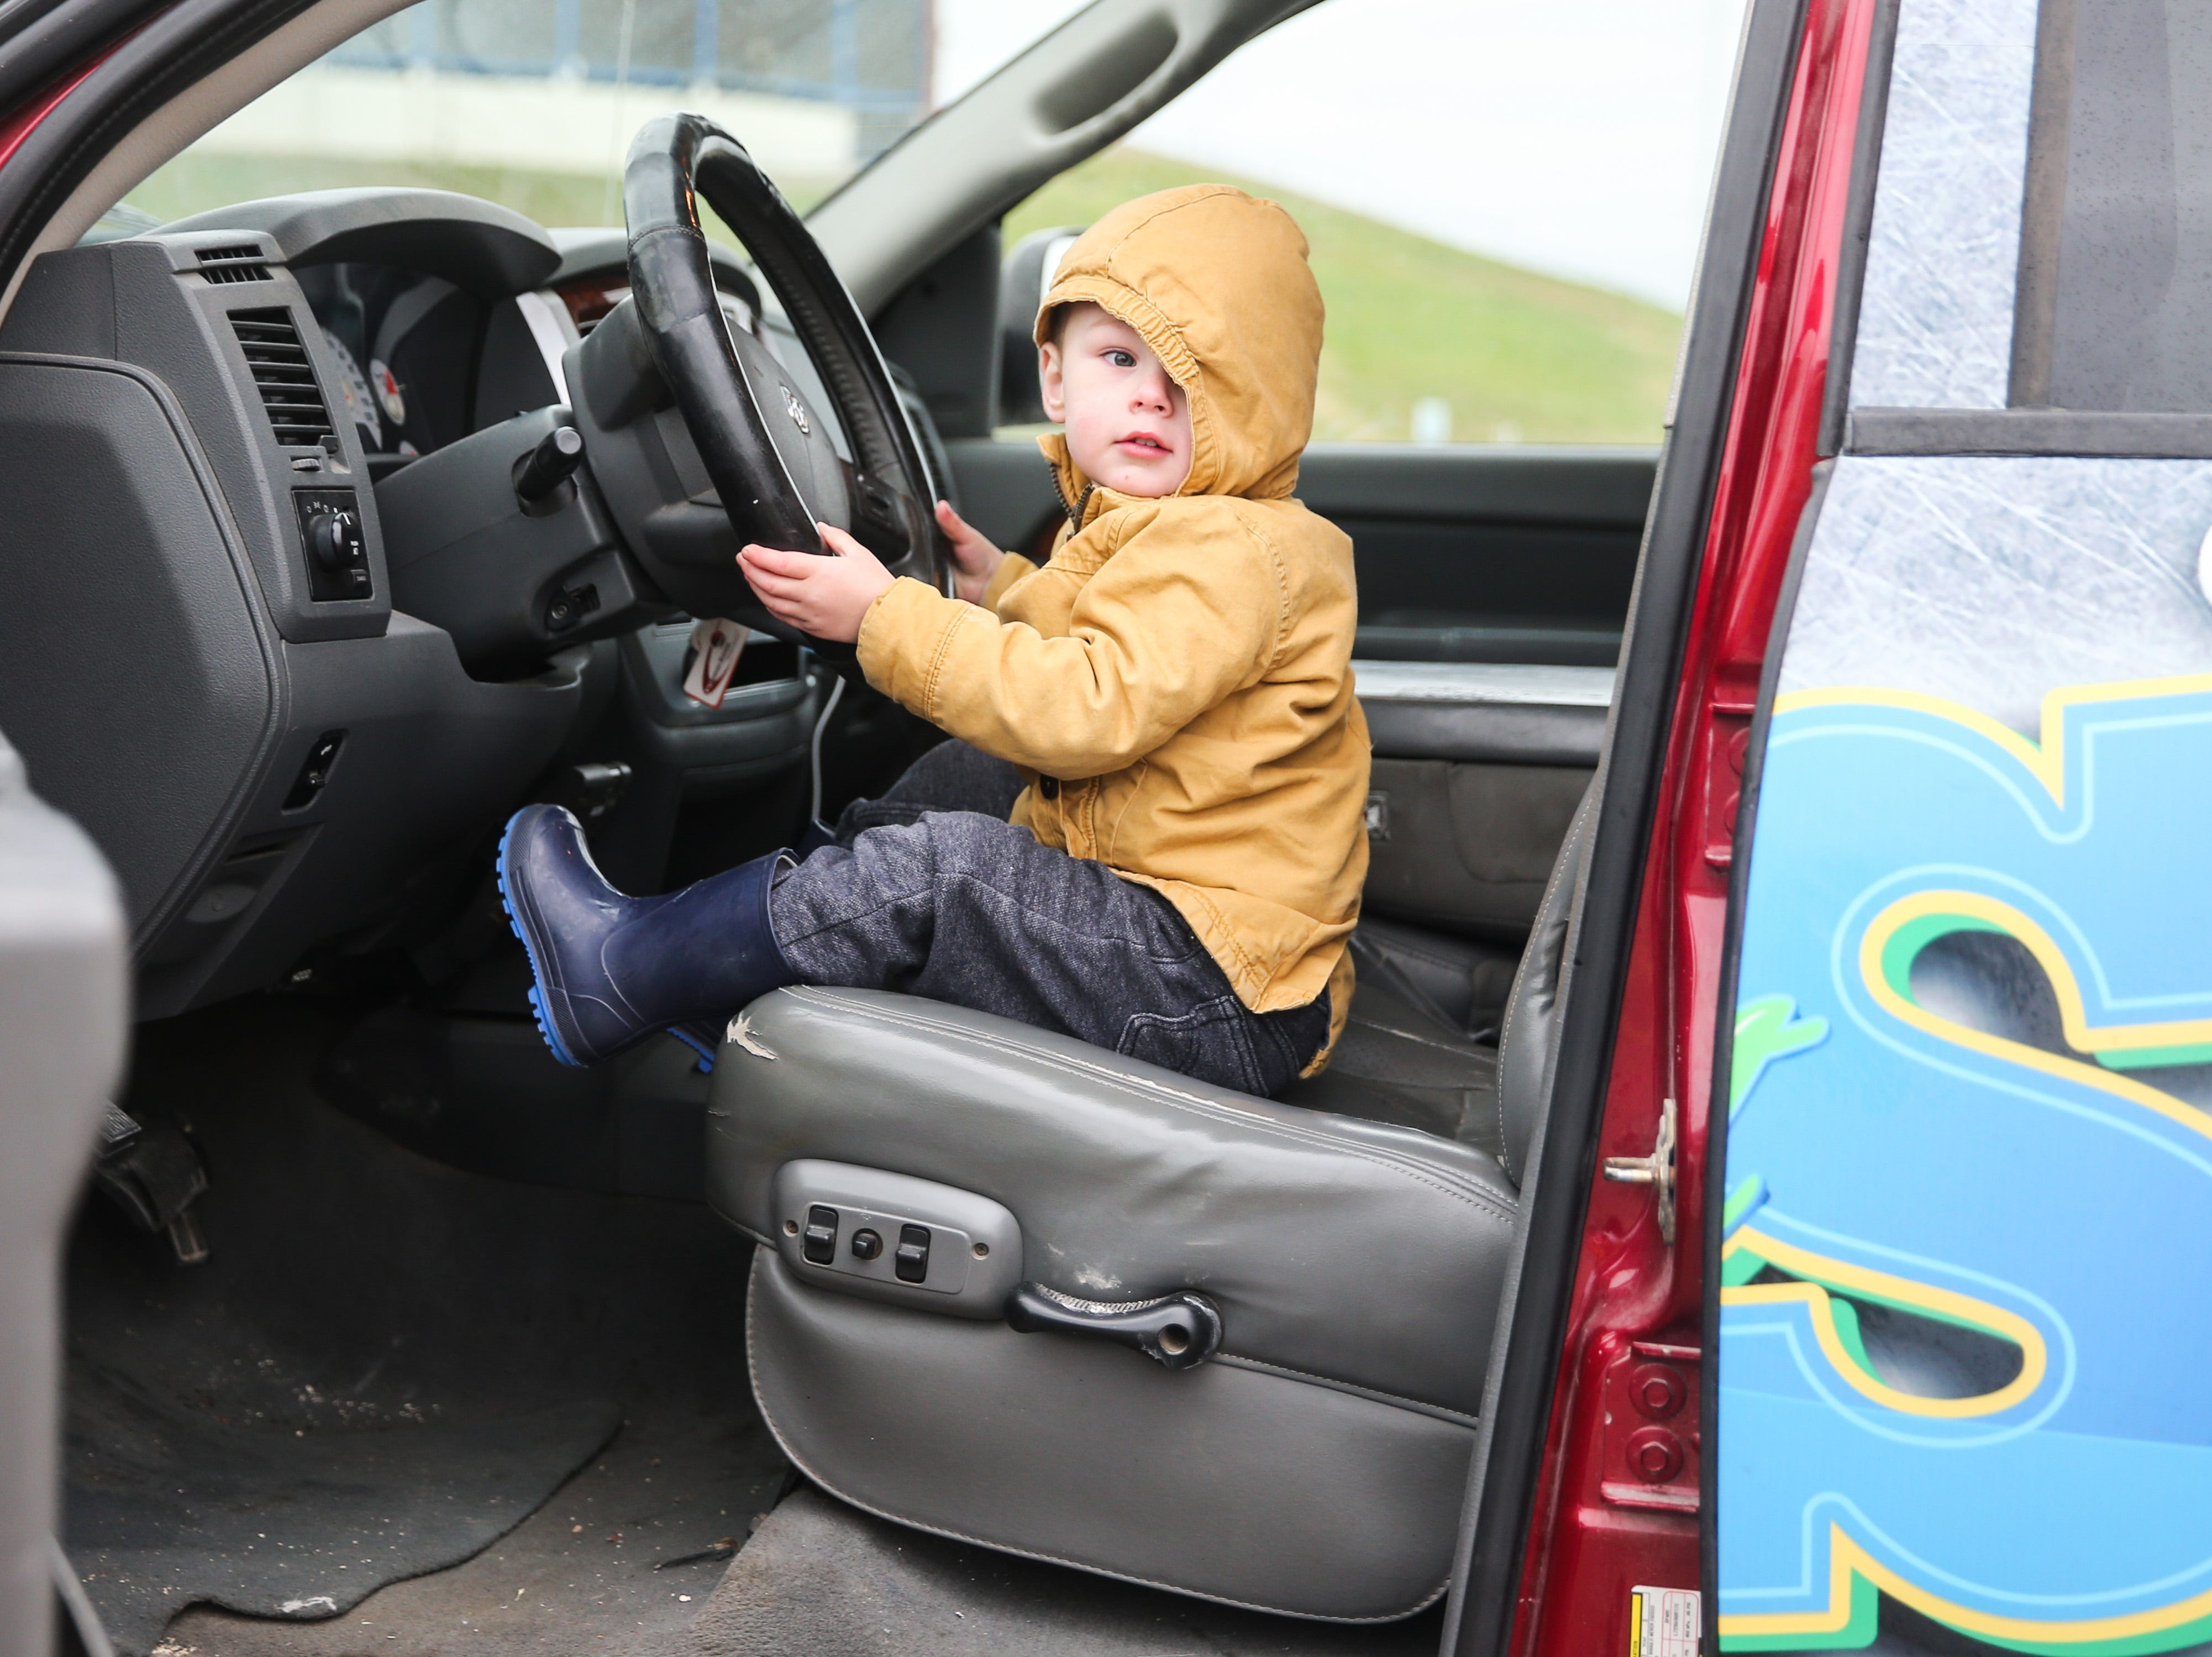 Reign Calvert sits behind the wheel of a truck during Touch-a-Truck event Saturday, April 13, 2019, at San Angelo Stadium.